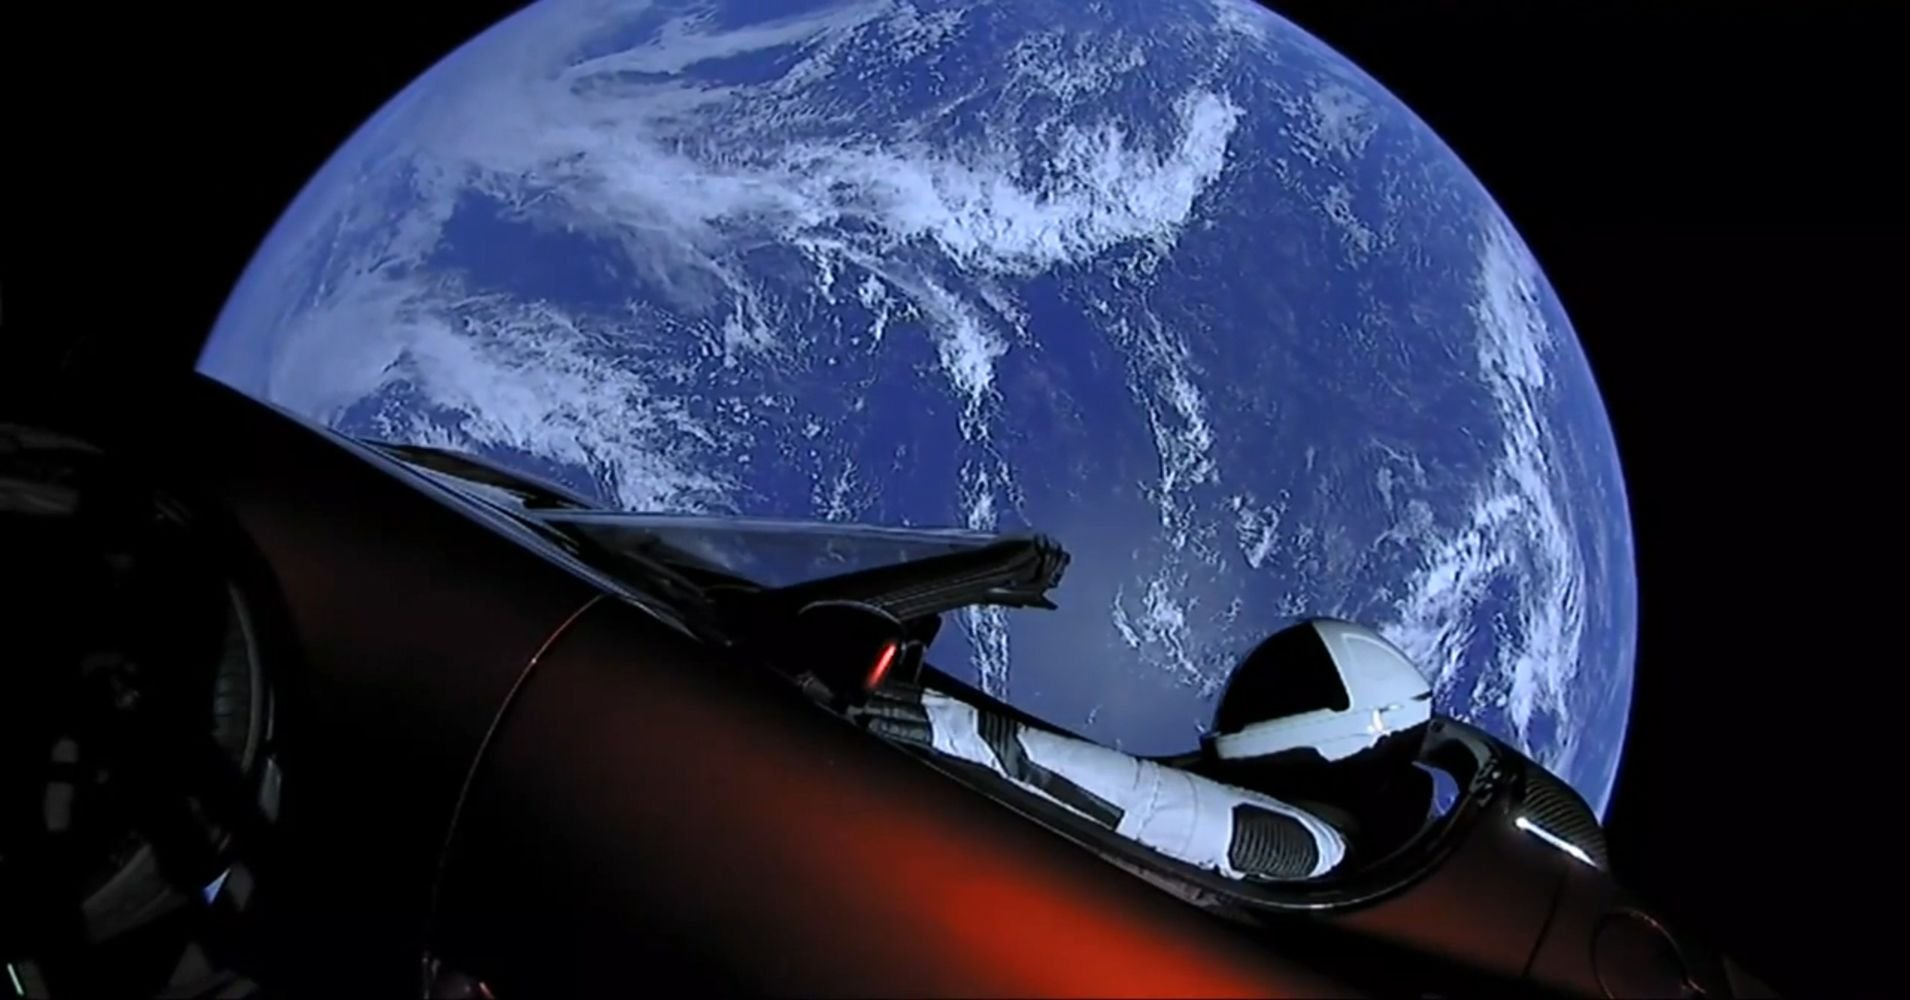 spacex, falcon heavy, tesla roadster, tesla roadster in space, tesla roadster starman, mars, mars planeti, mars planet